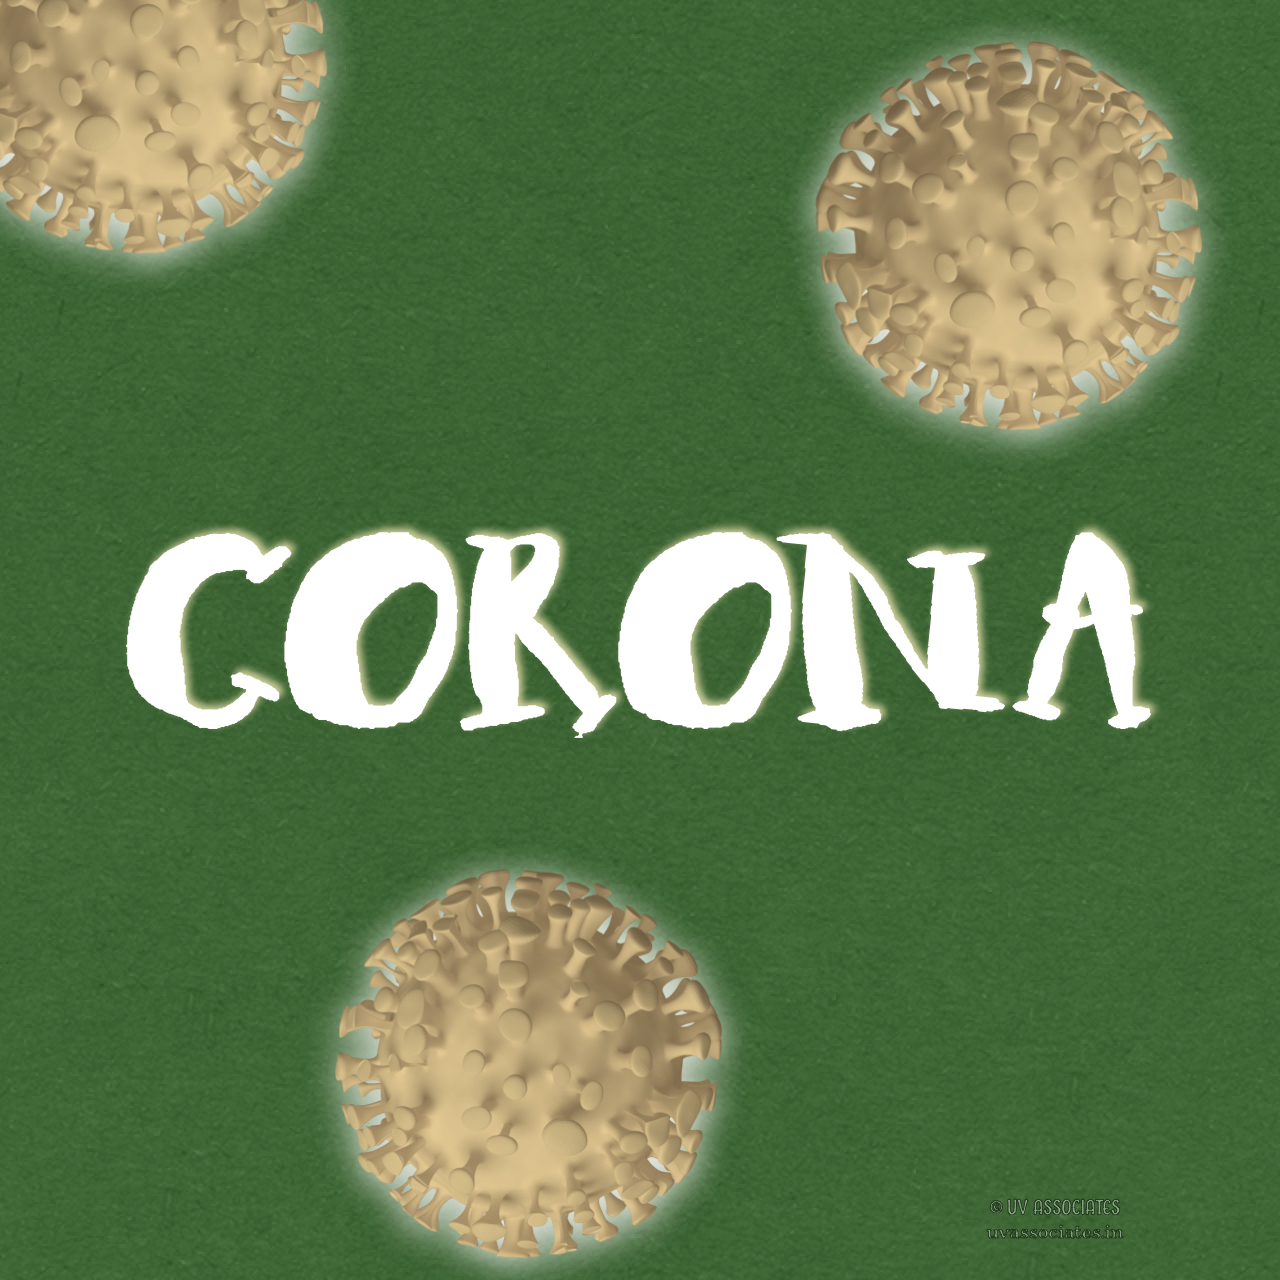 Corona Text on Green background with 3d render of Coronavirus Cells